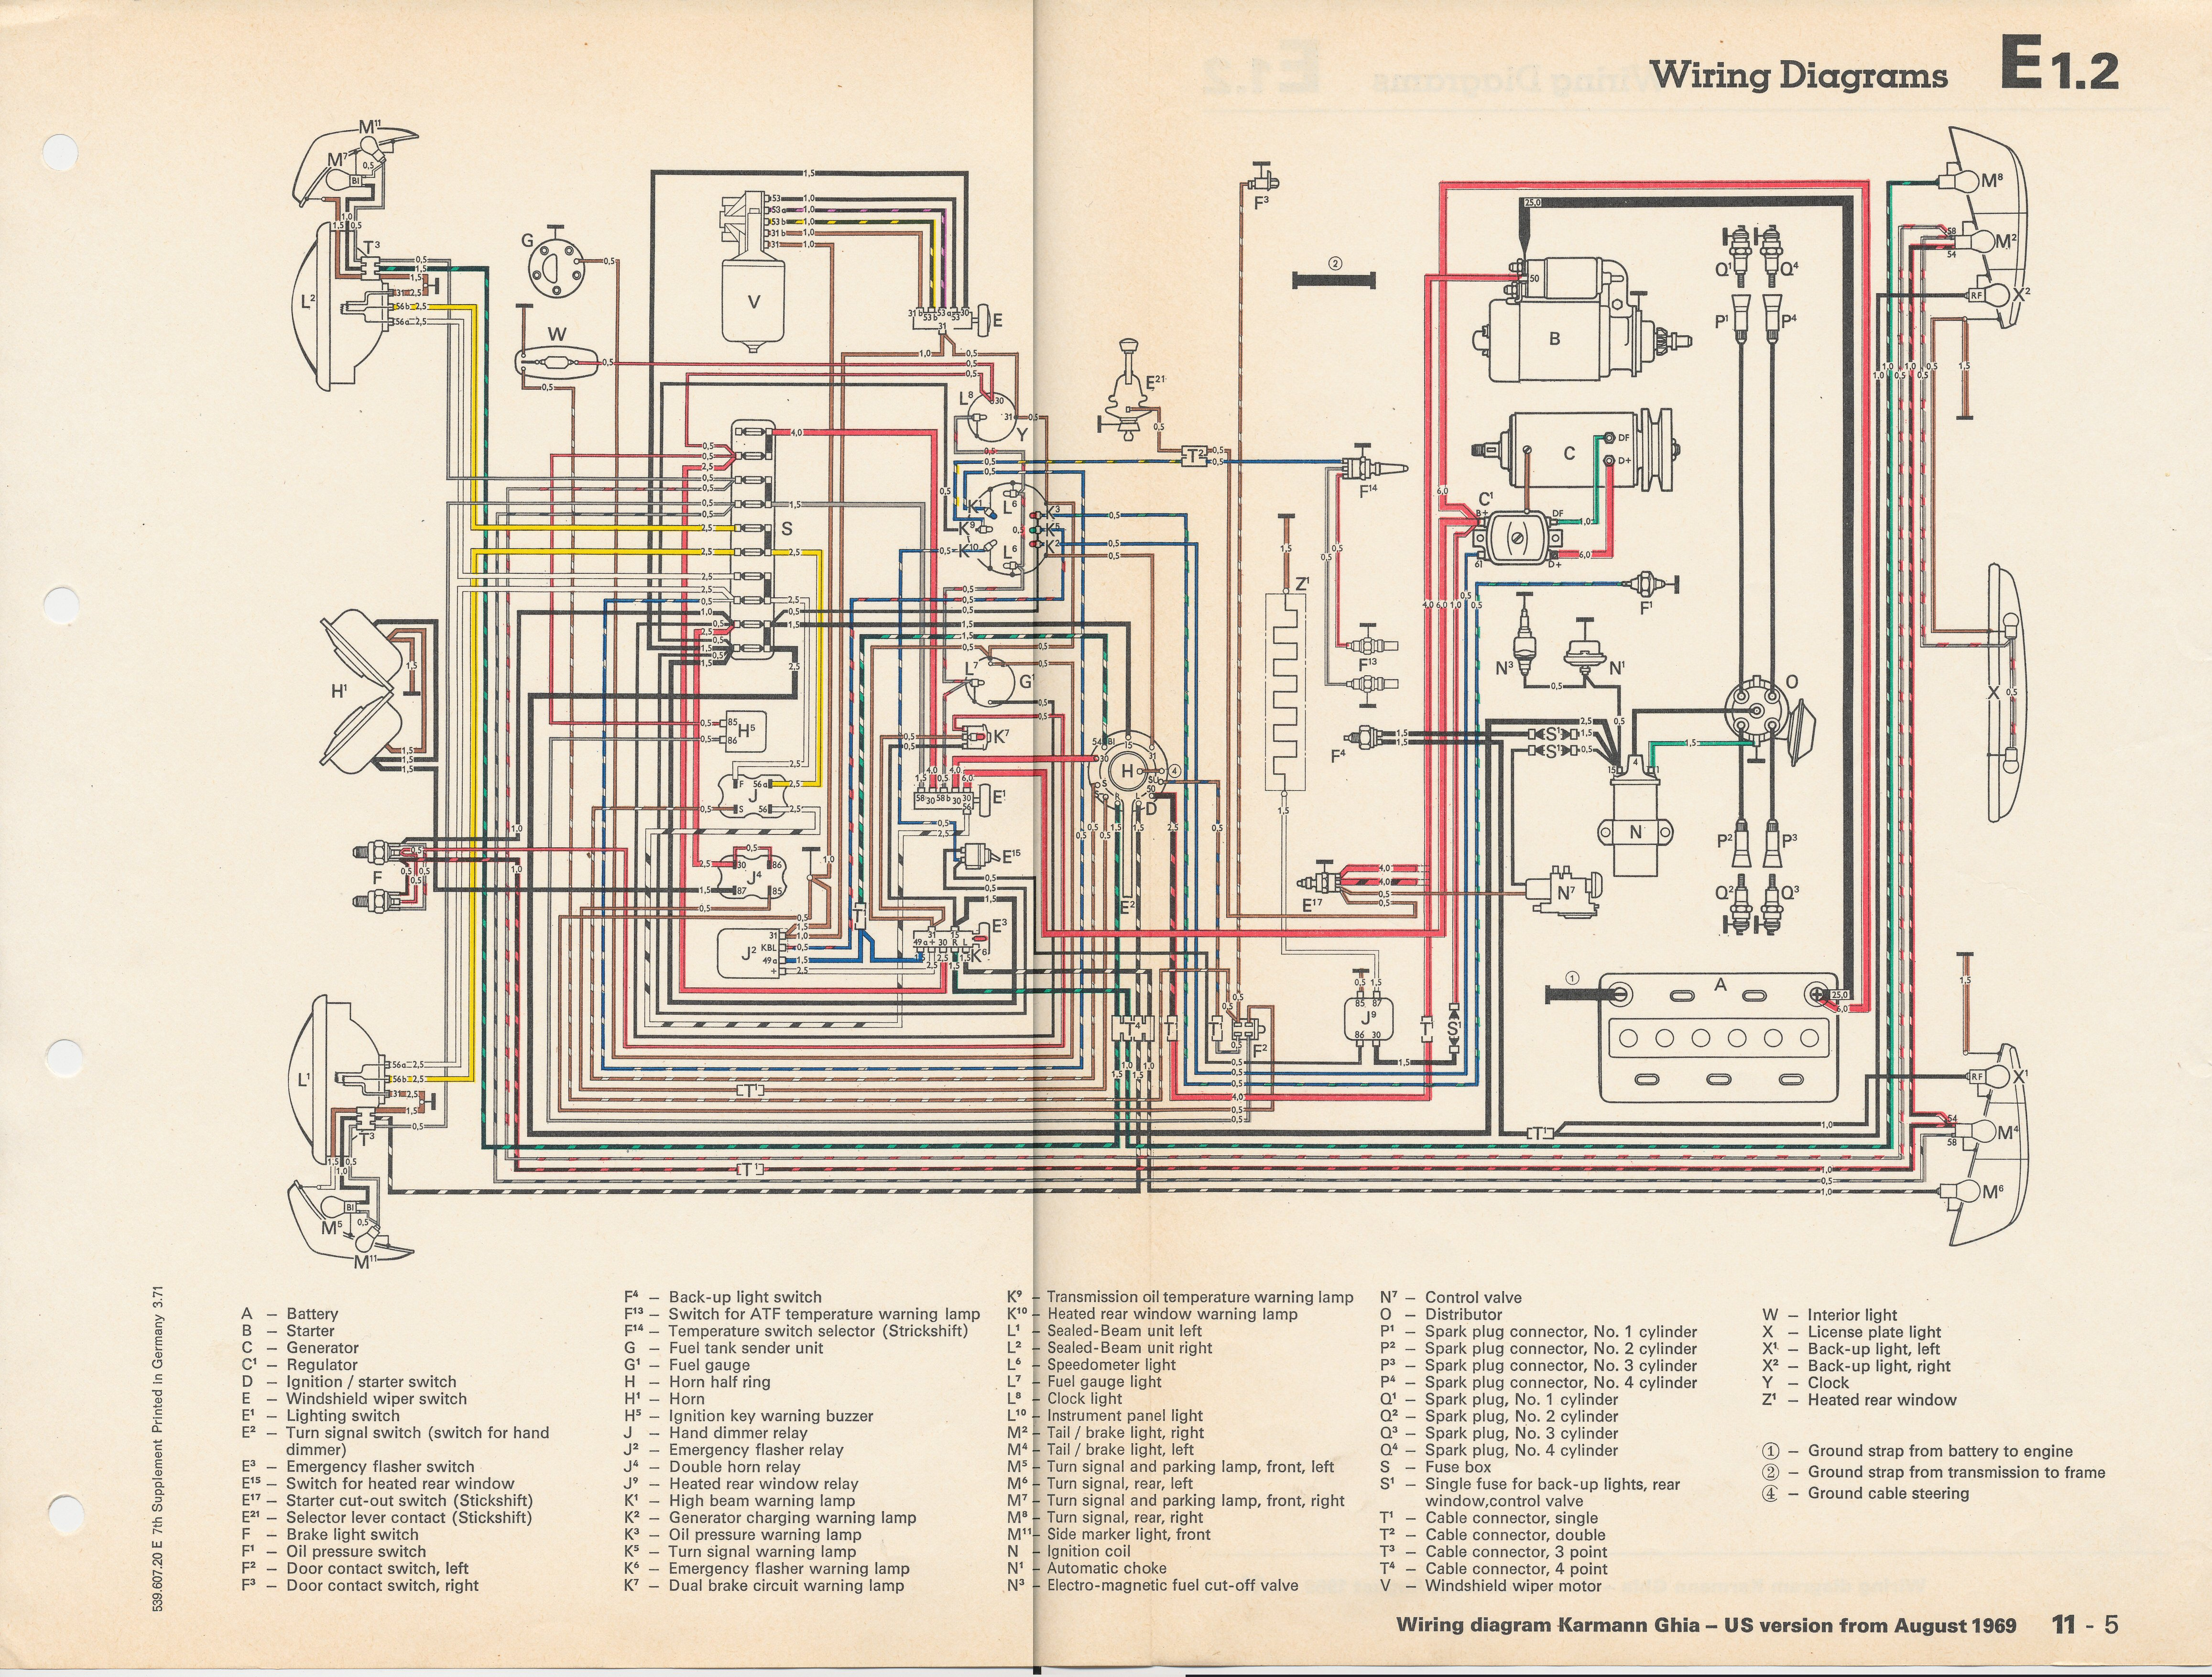 1988 Vw Wire Diagram Solving Your Problem About Wiring Diagram